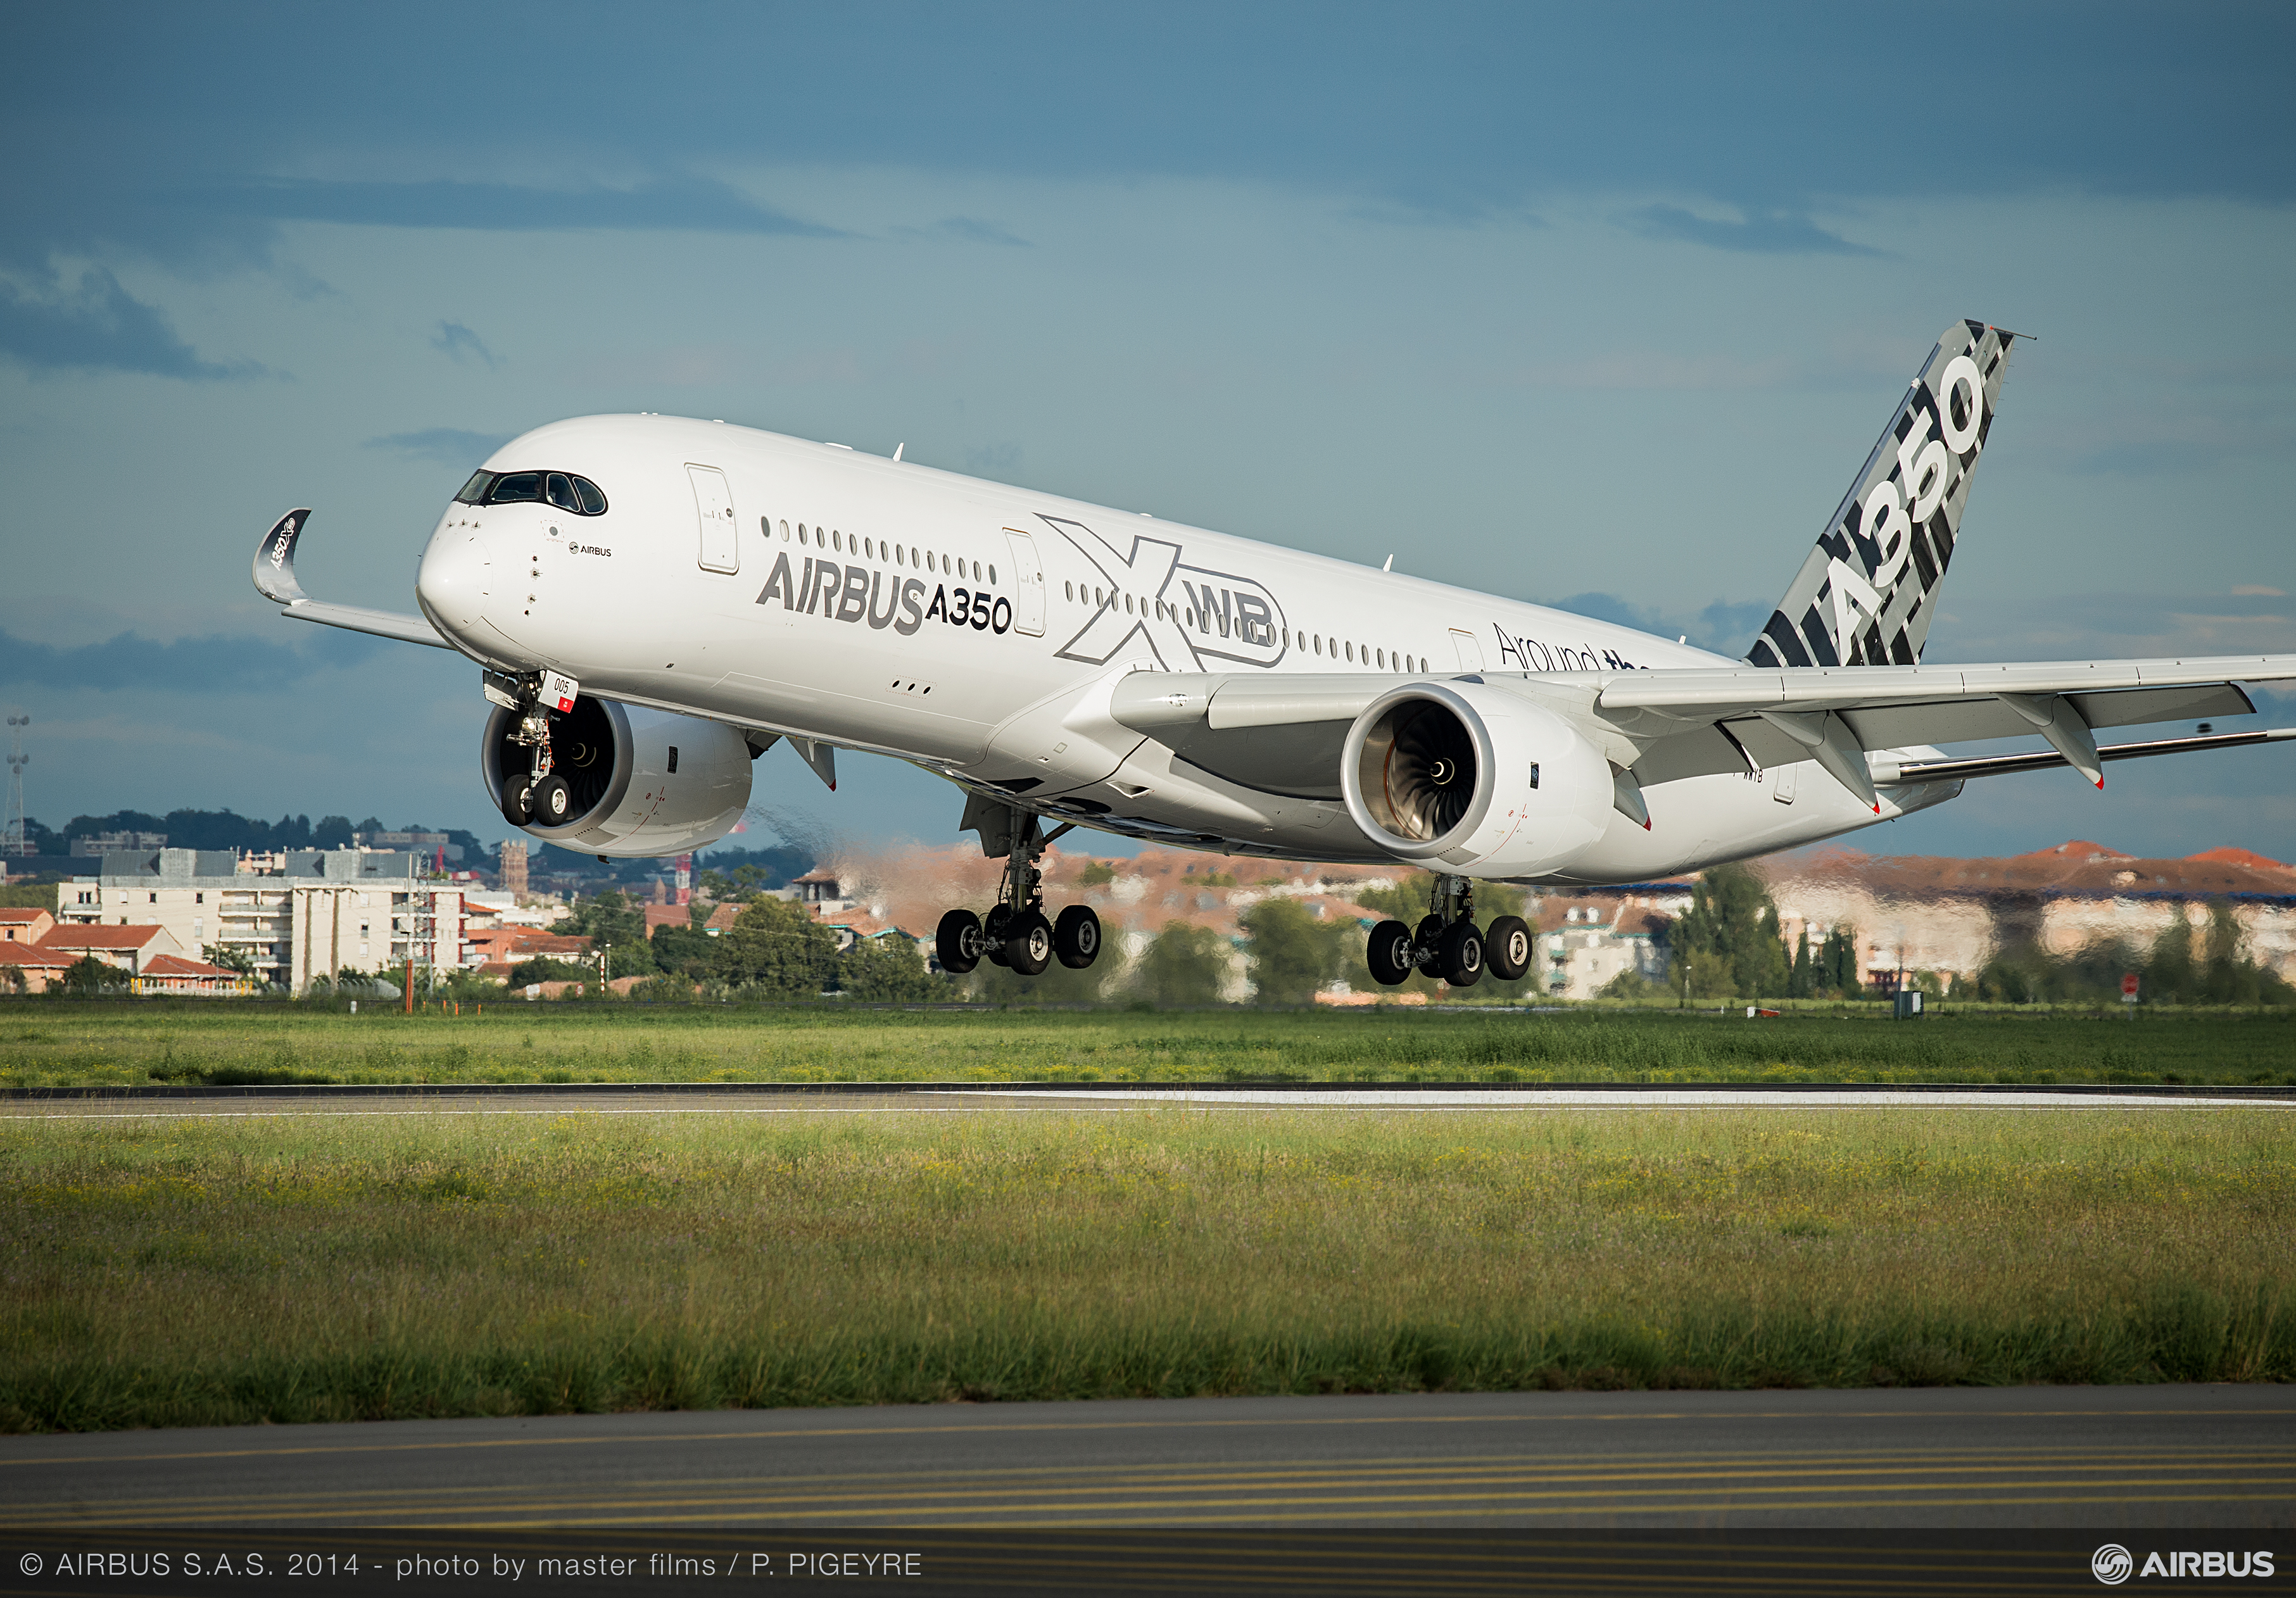 Airbus has produced more than 1000 flight parts on Stratasys 3D printers for use in its A350 XWB aircraft.